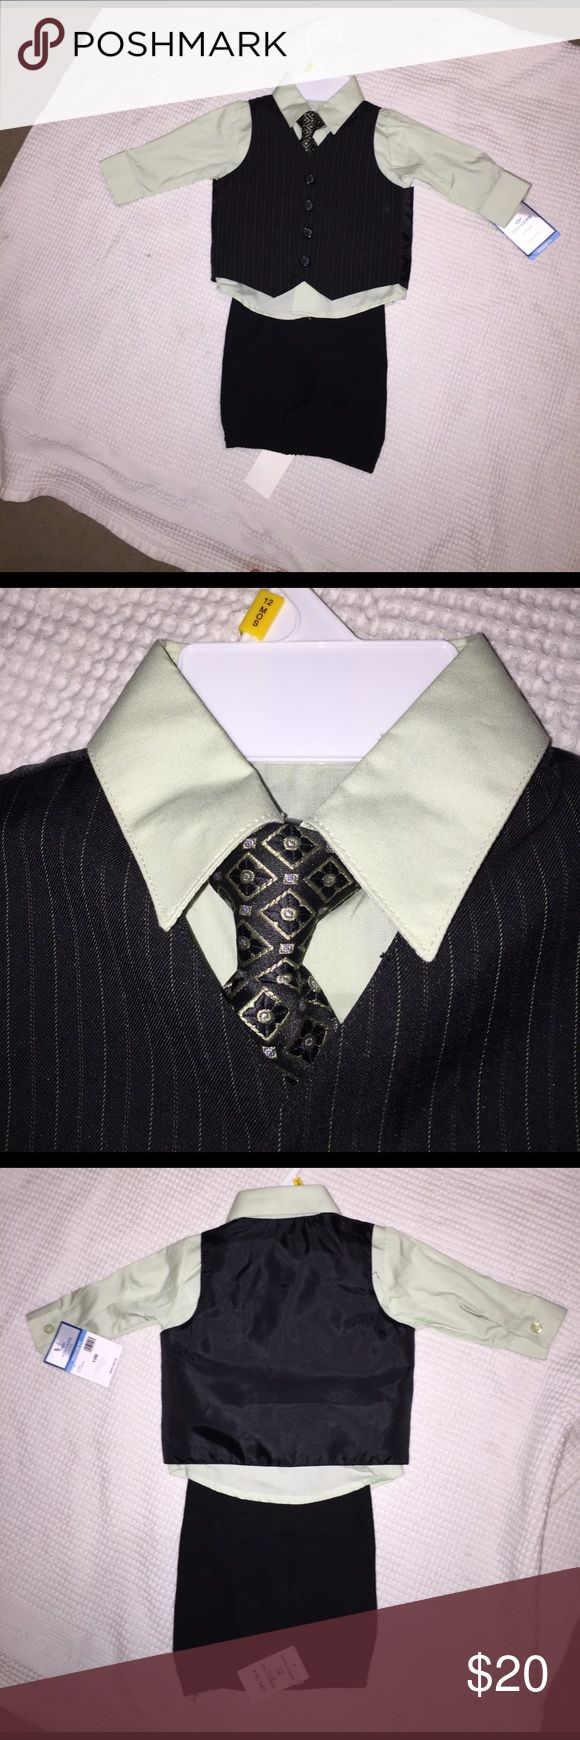 Baby boy suit set Adorable light green shirt and black suit set. Vest is black with white pinstripes and tie is black with designs Dockers Other